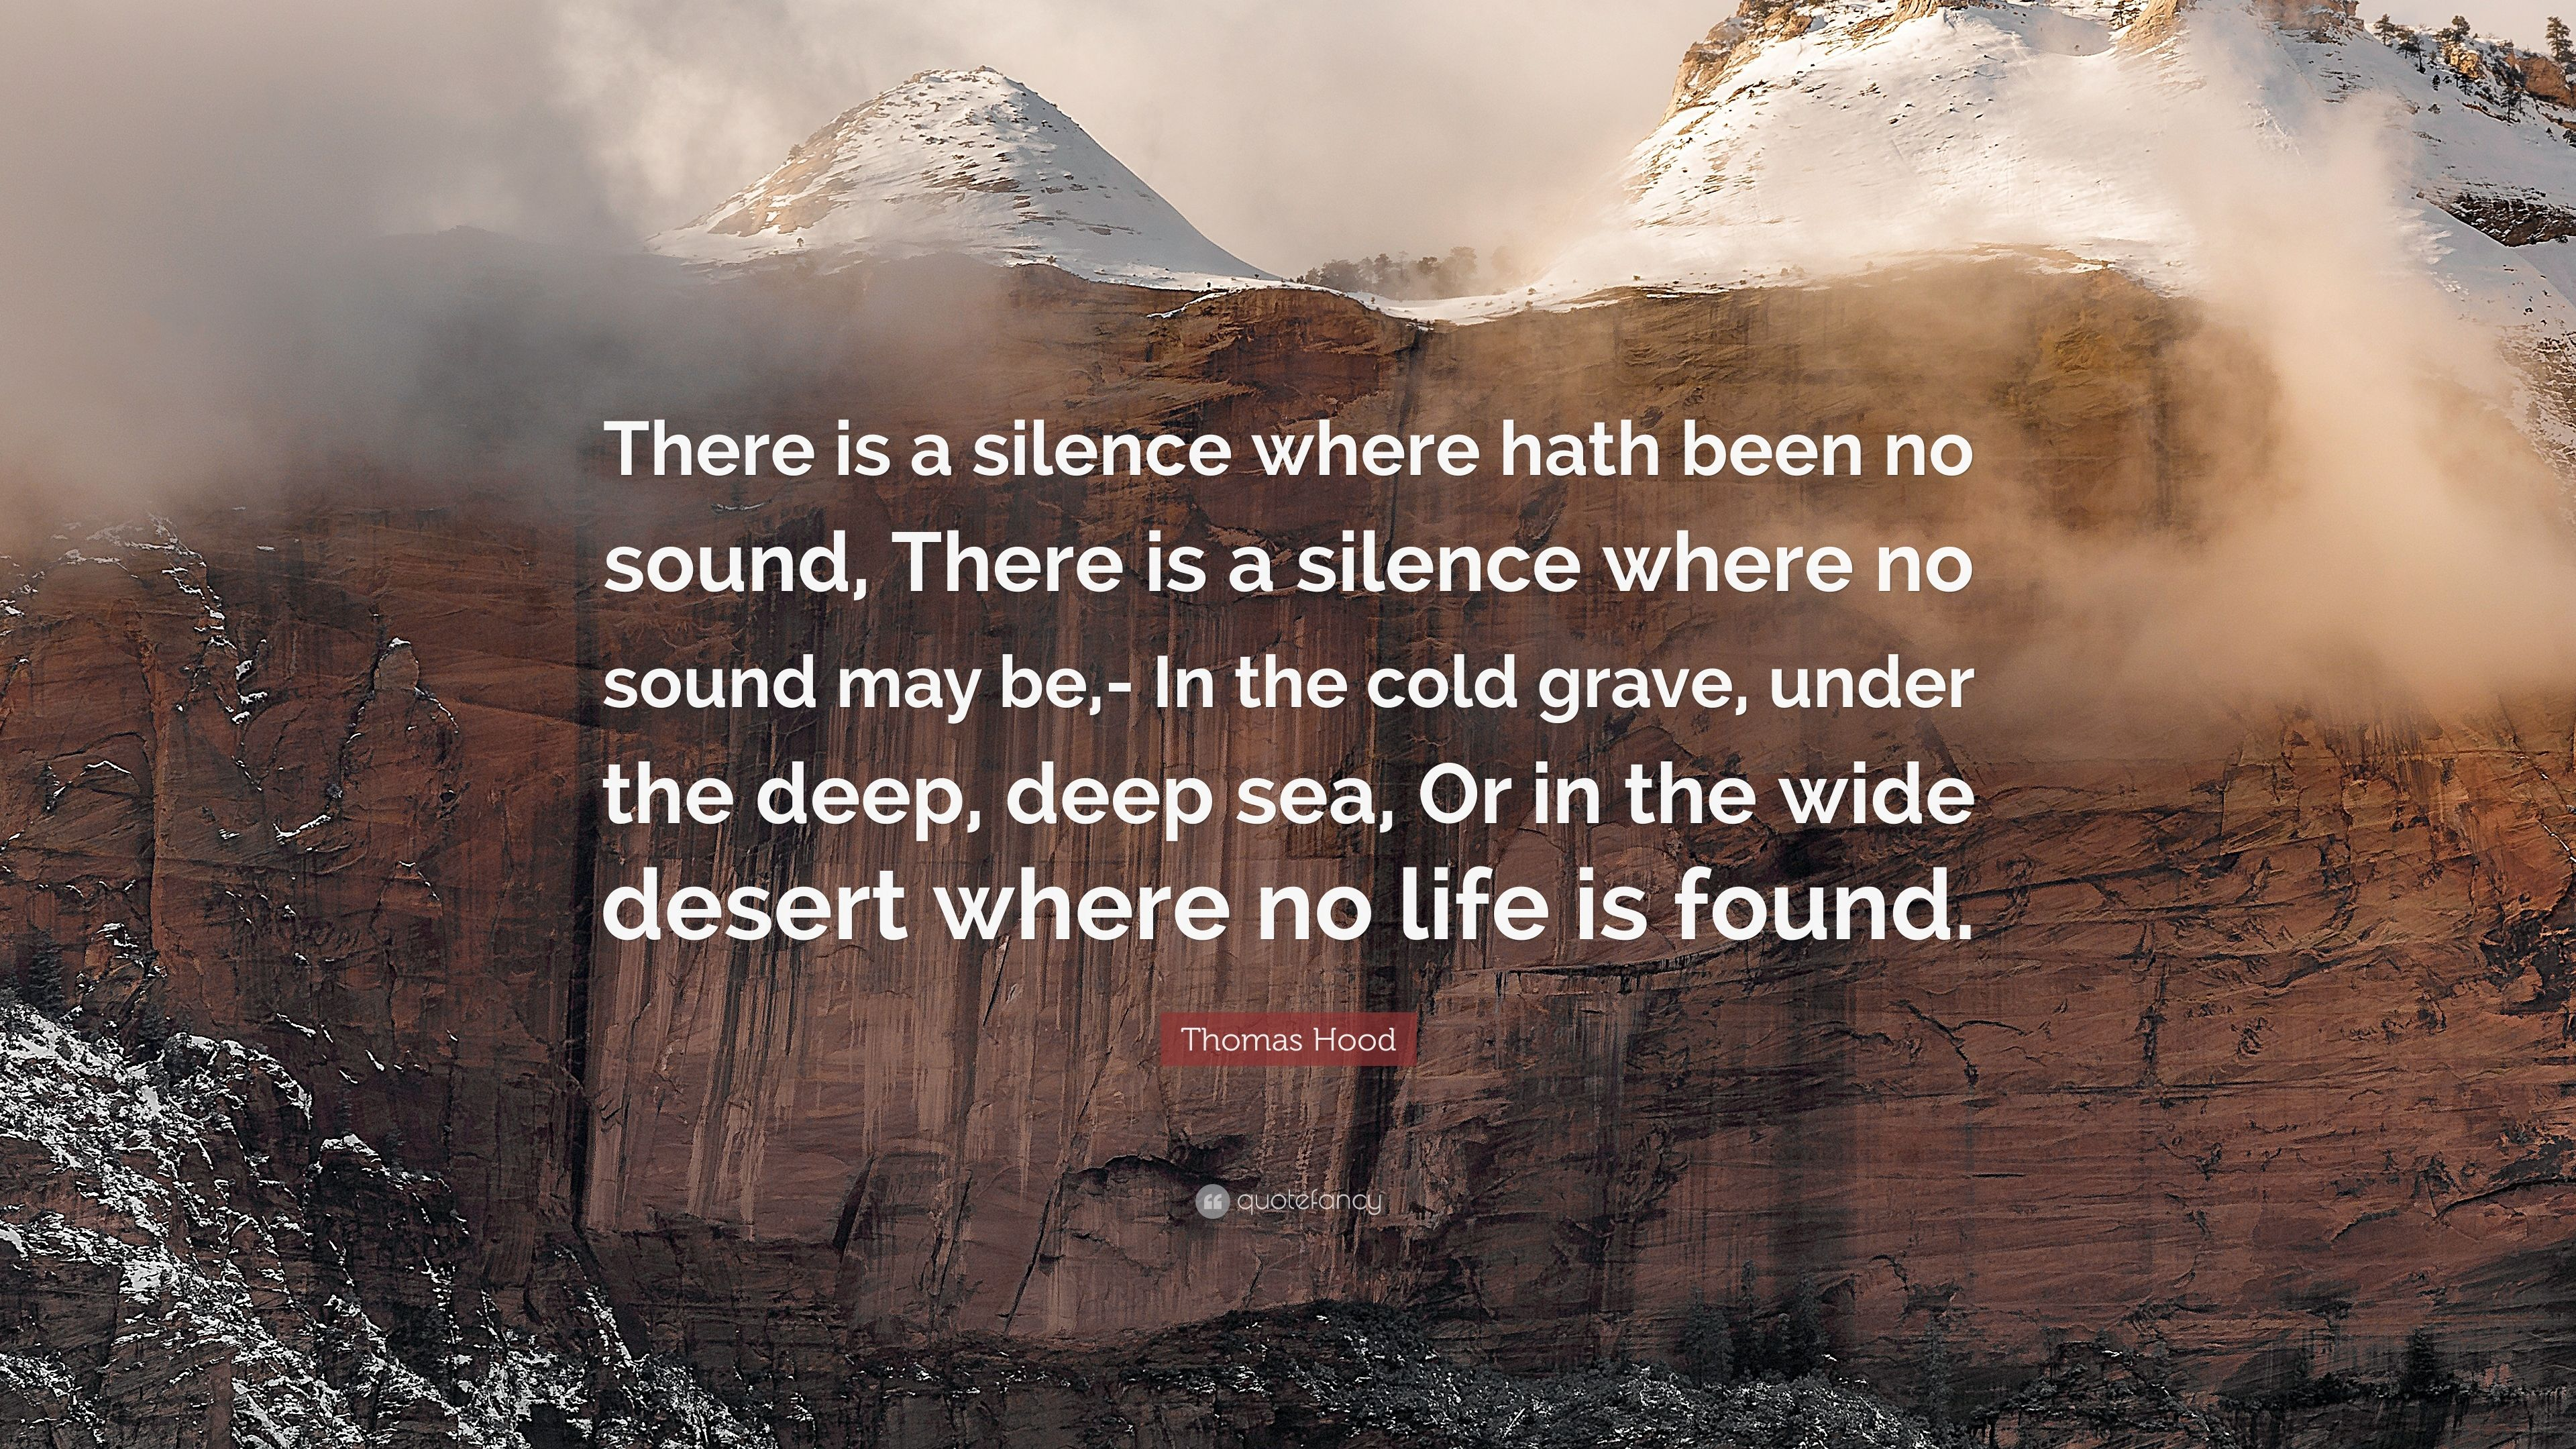 Thomas Hood Quote There Is A Silence Where Hath Been No Sound